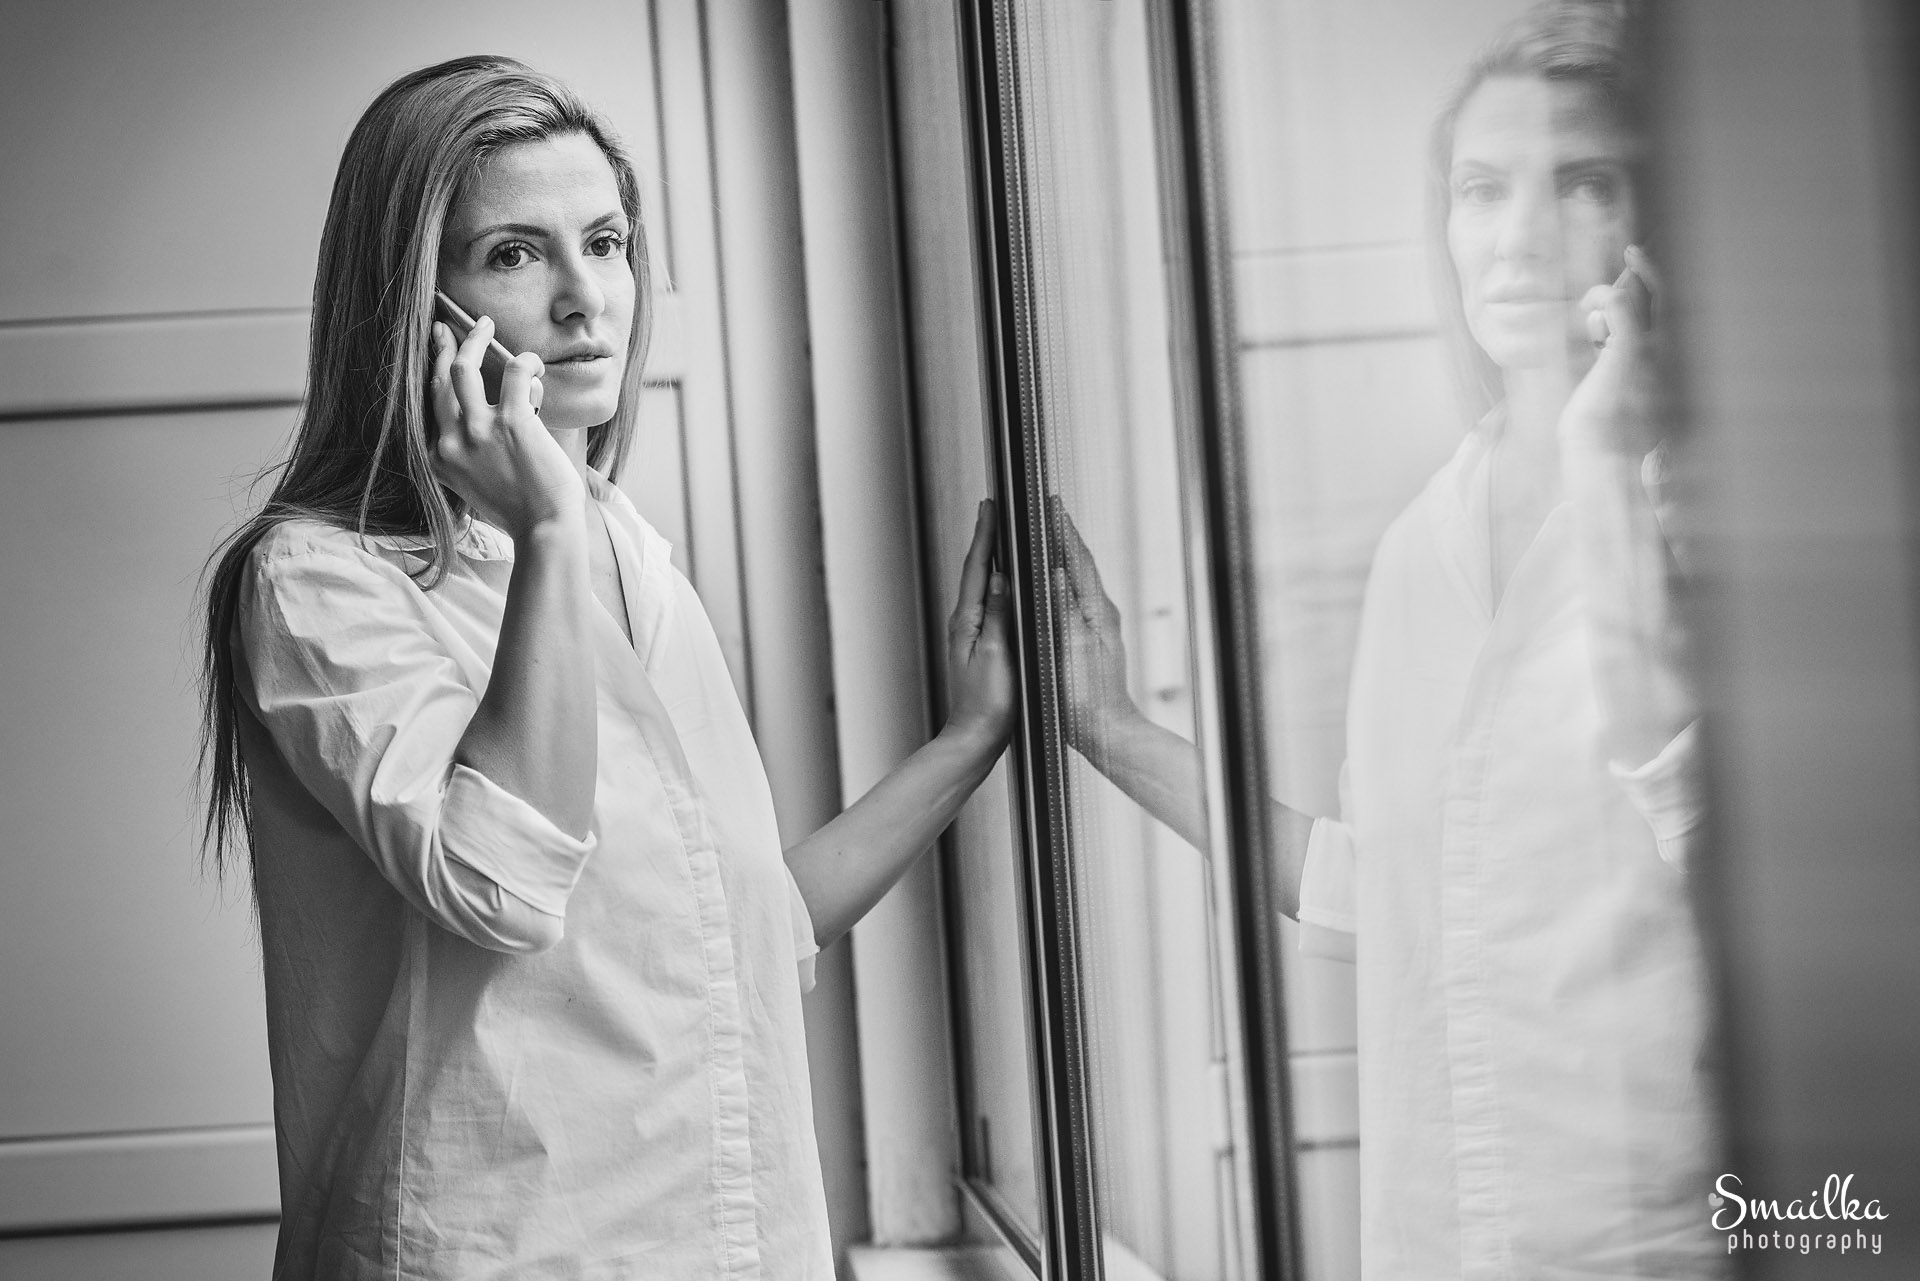 Lifestyle photography Portrait of a woman by a window